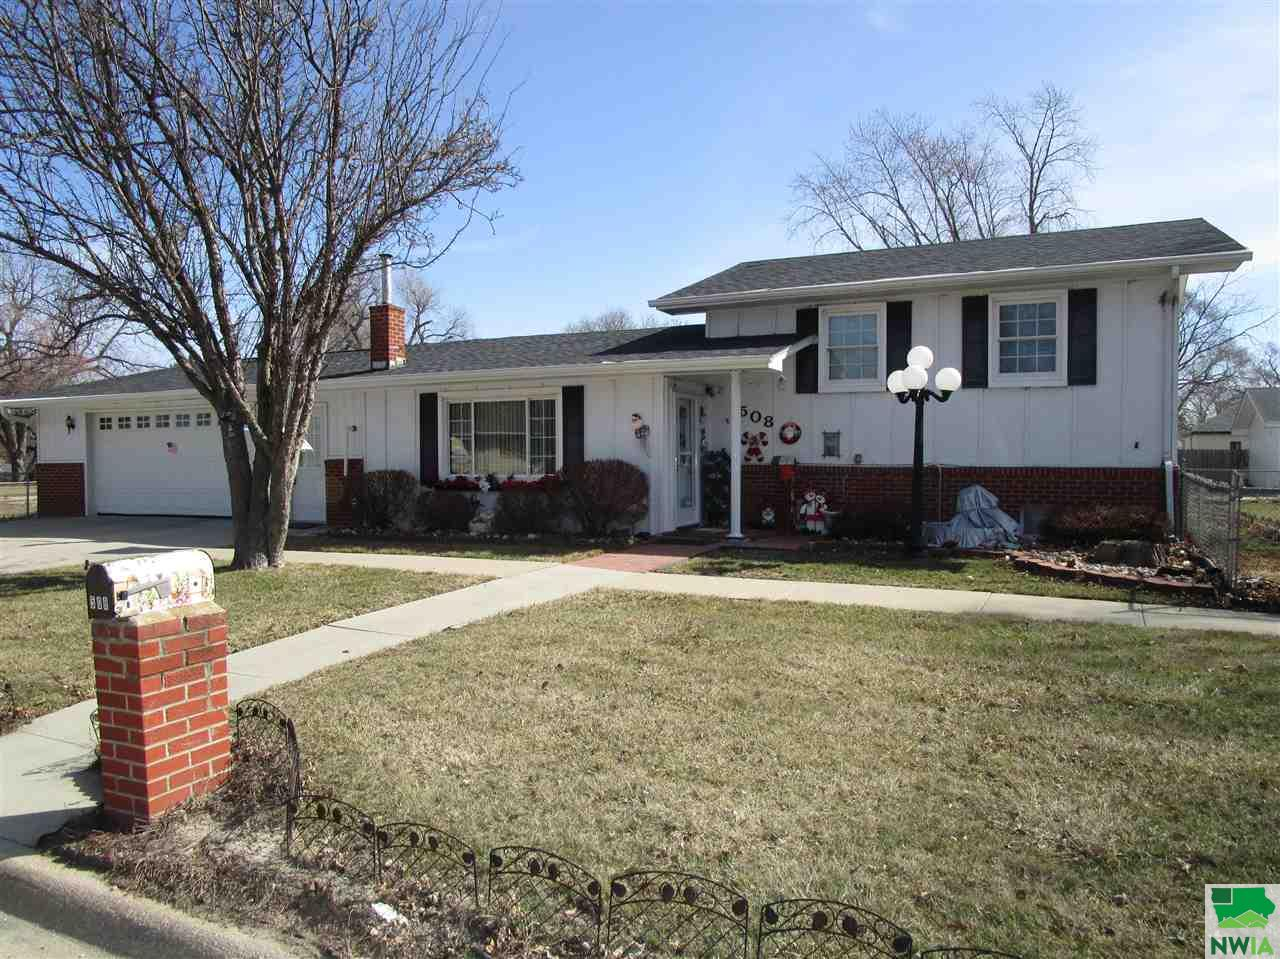 Property for sale at 508-512 4th Avenue, South Sioux City,  NE 68776